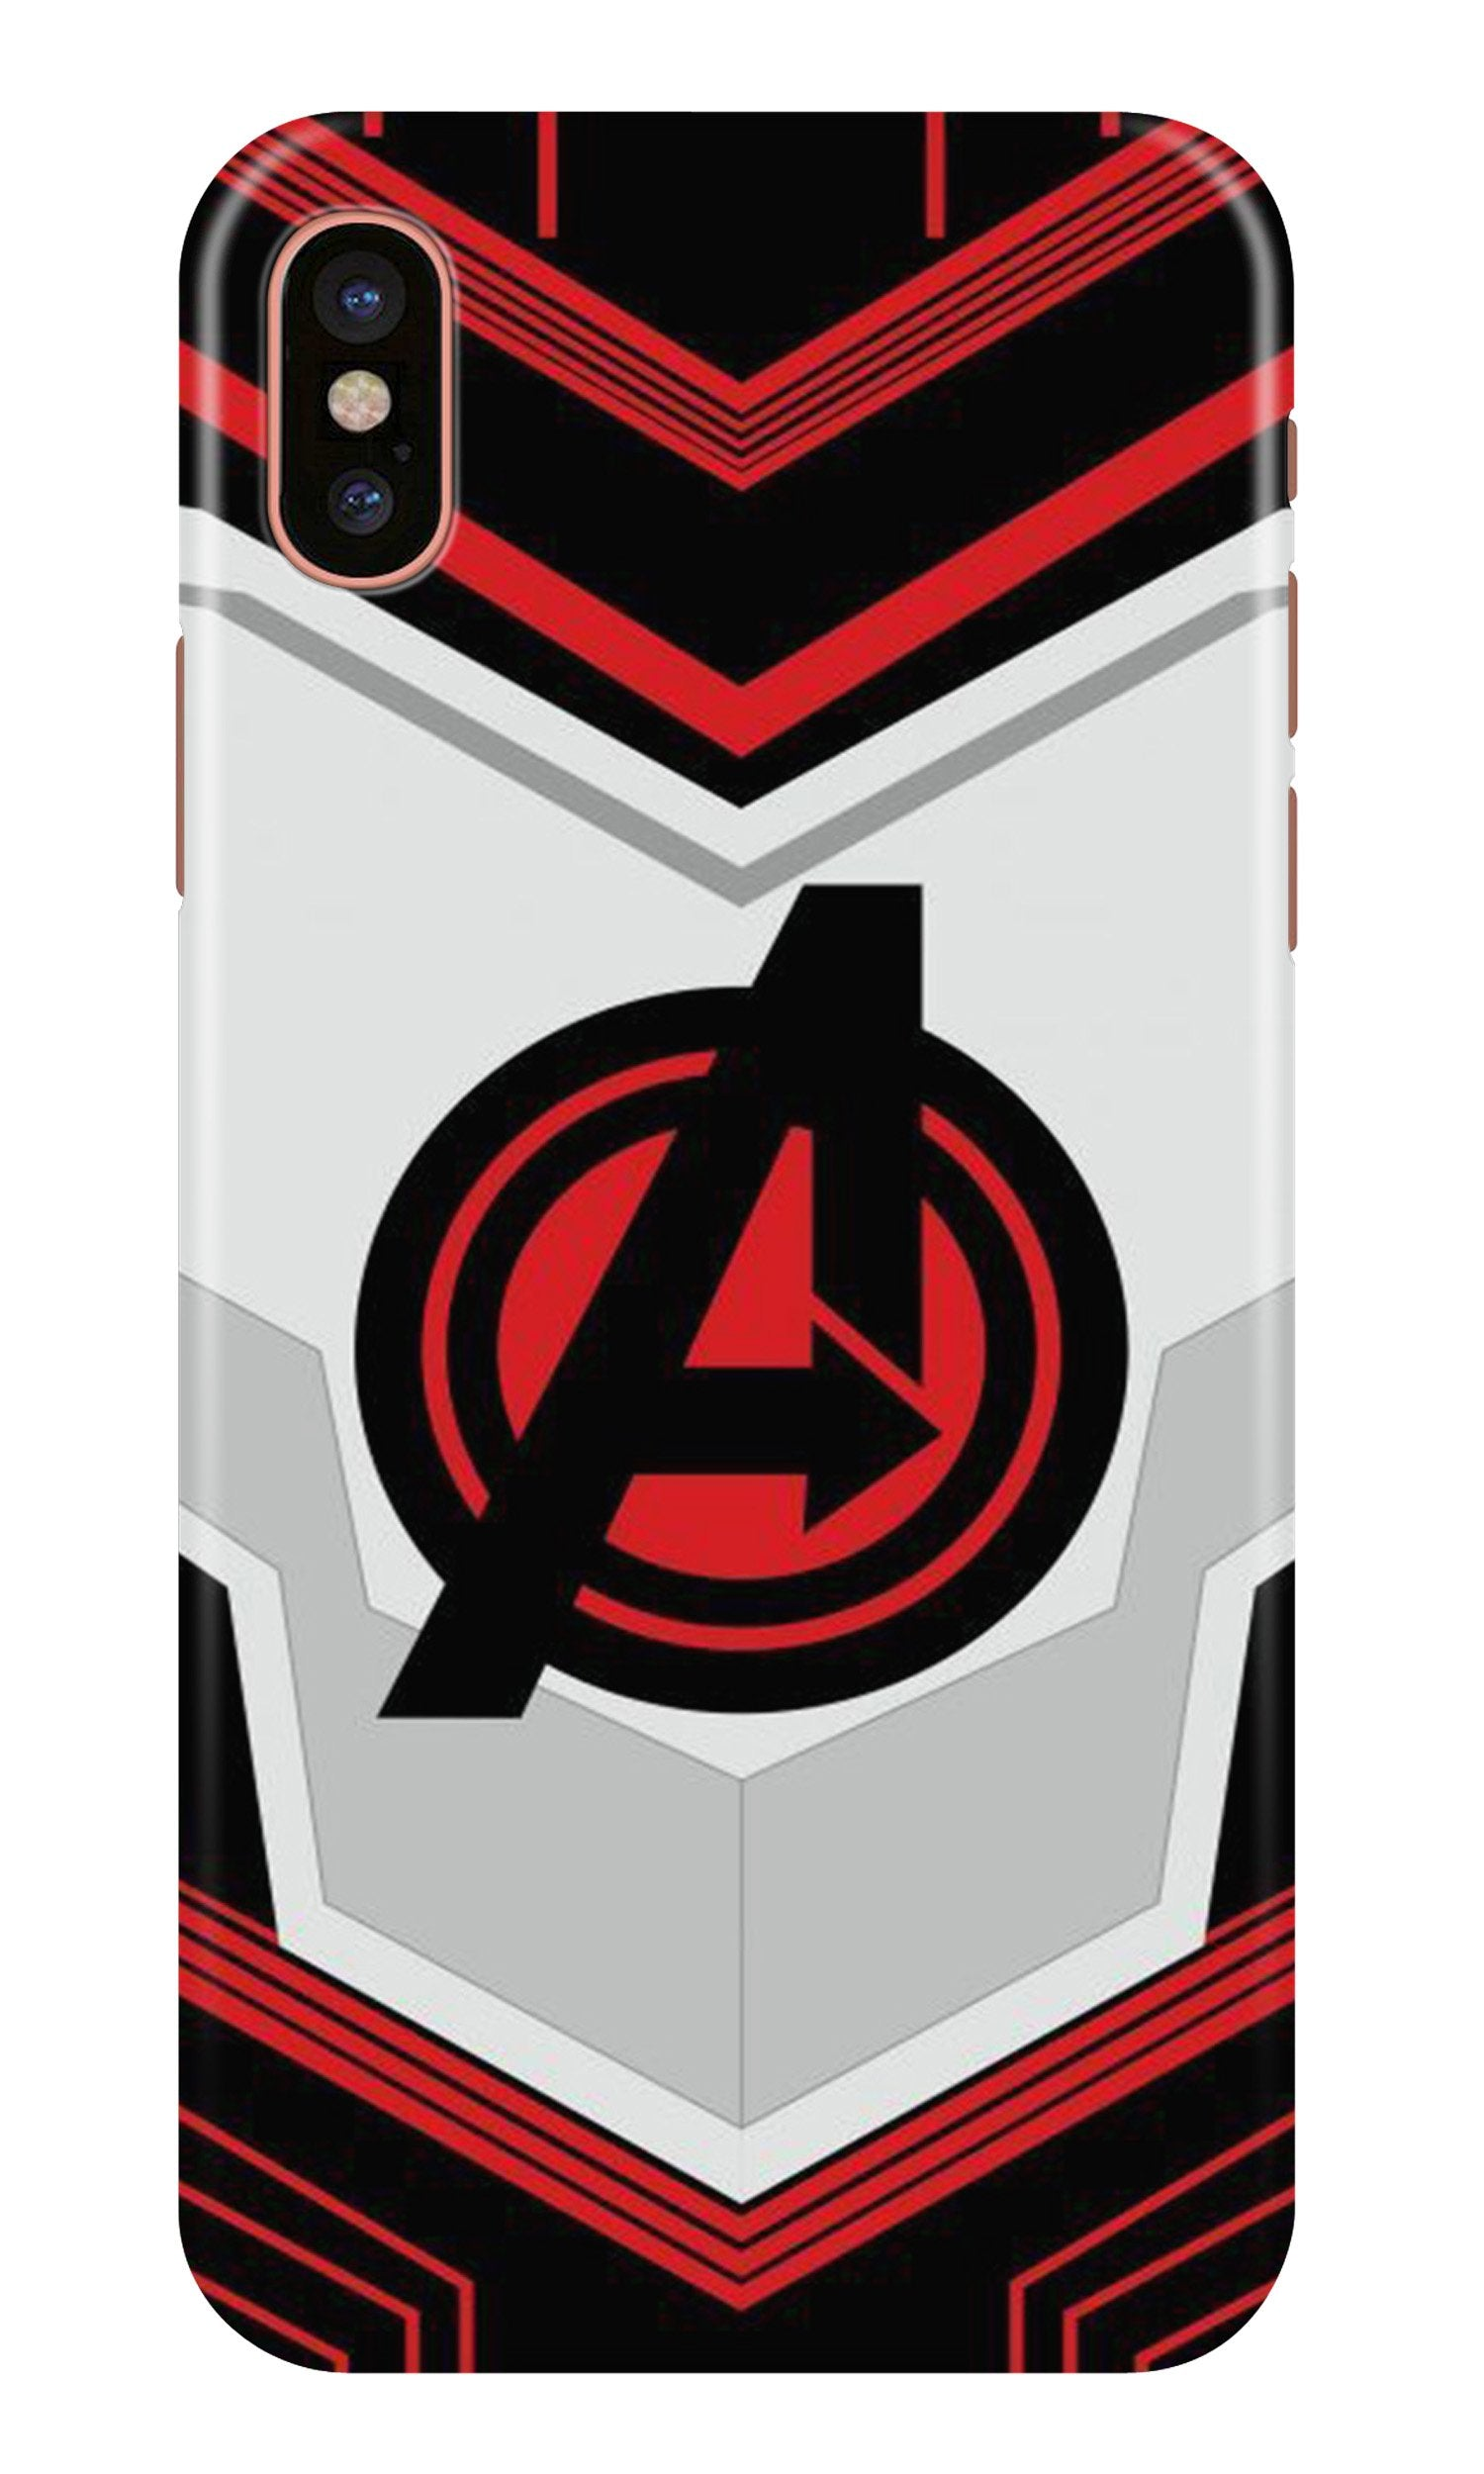 Avengers2 Case for iPhone Xr (Design No. 255)